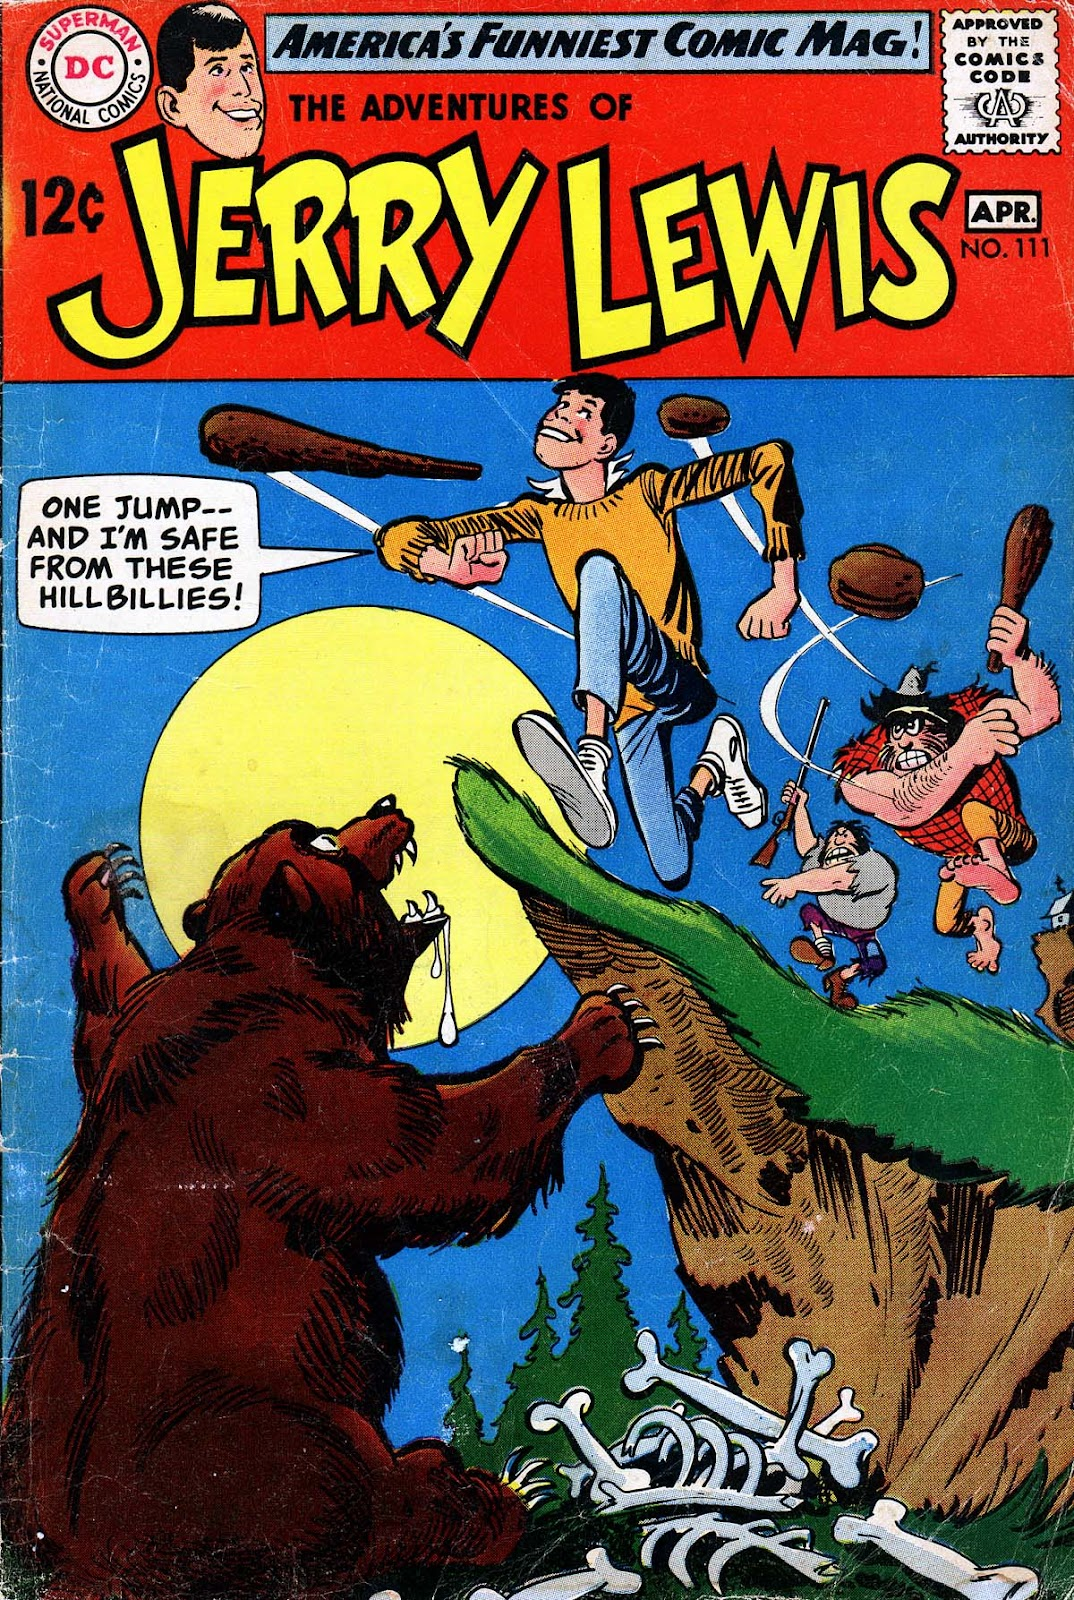 The Adventures of Jerry Lewis 111 Page 1